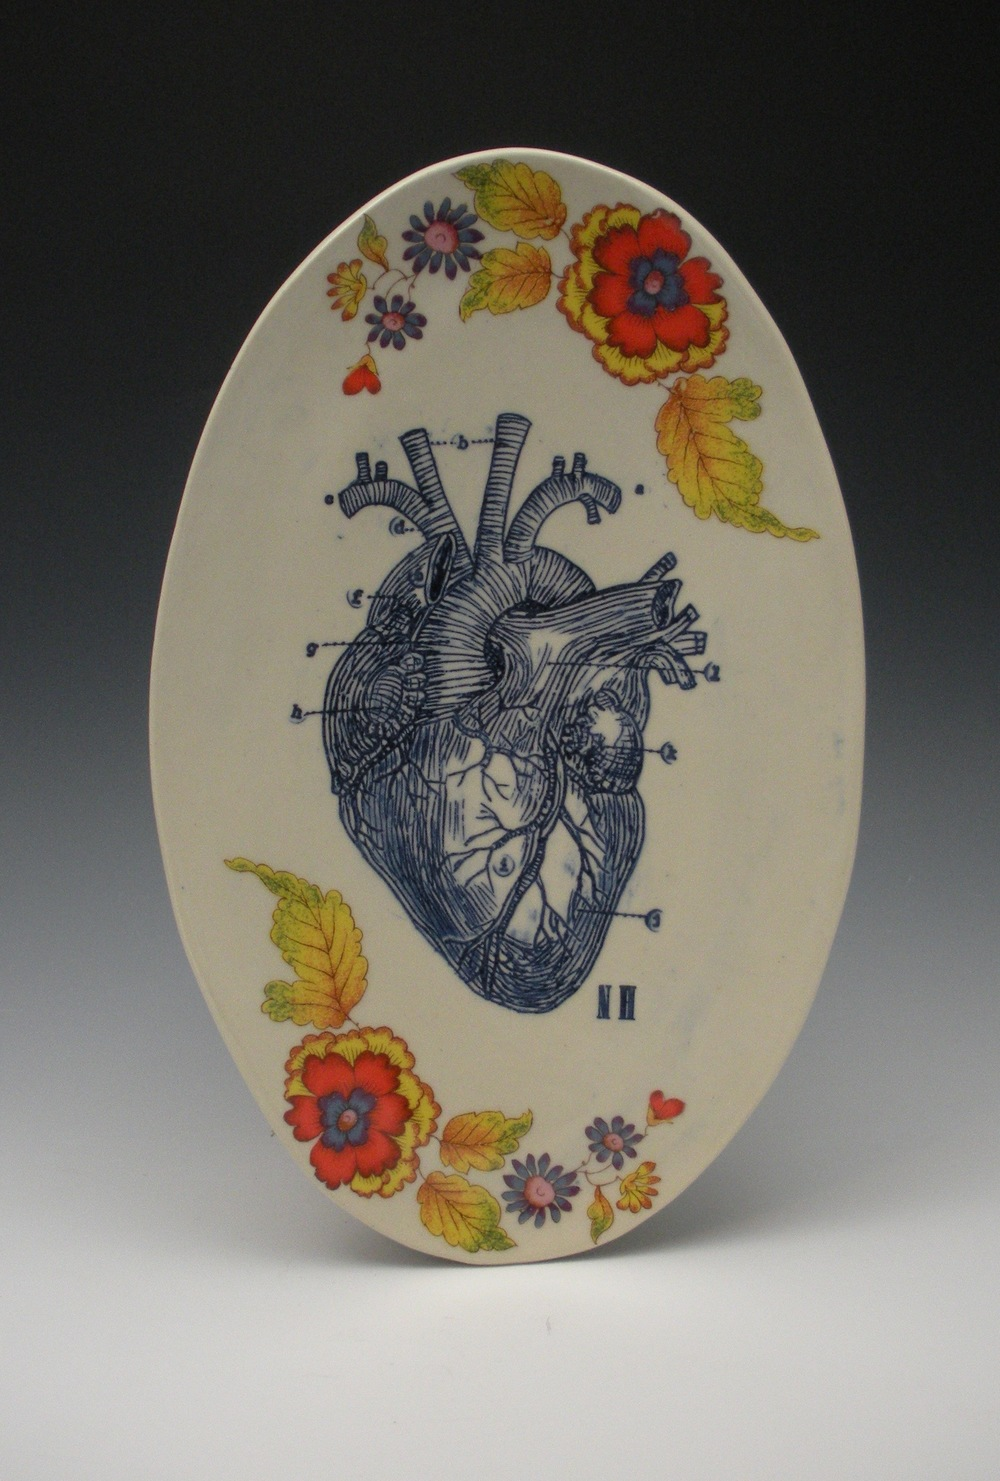 ANATOMICAL HEART PLATE